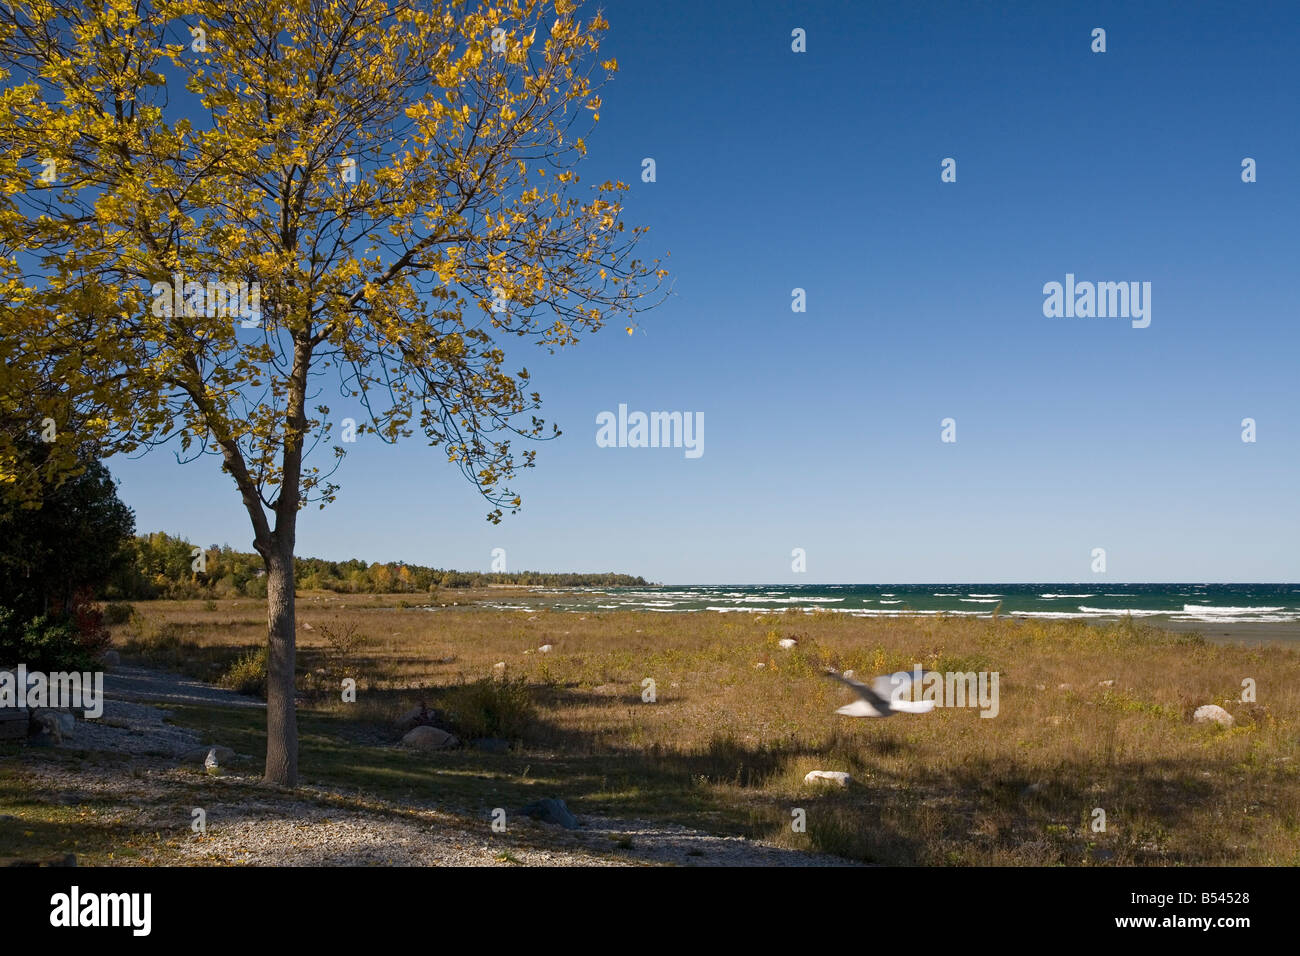 Site of Former Nuclear Power Plant on Lake Michigan - Stock Image